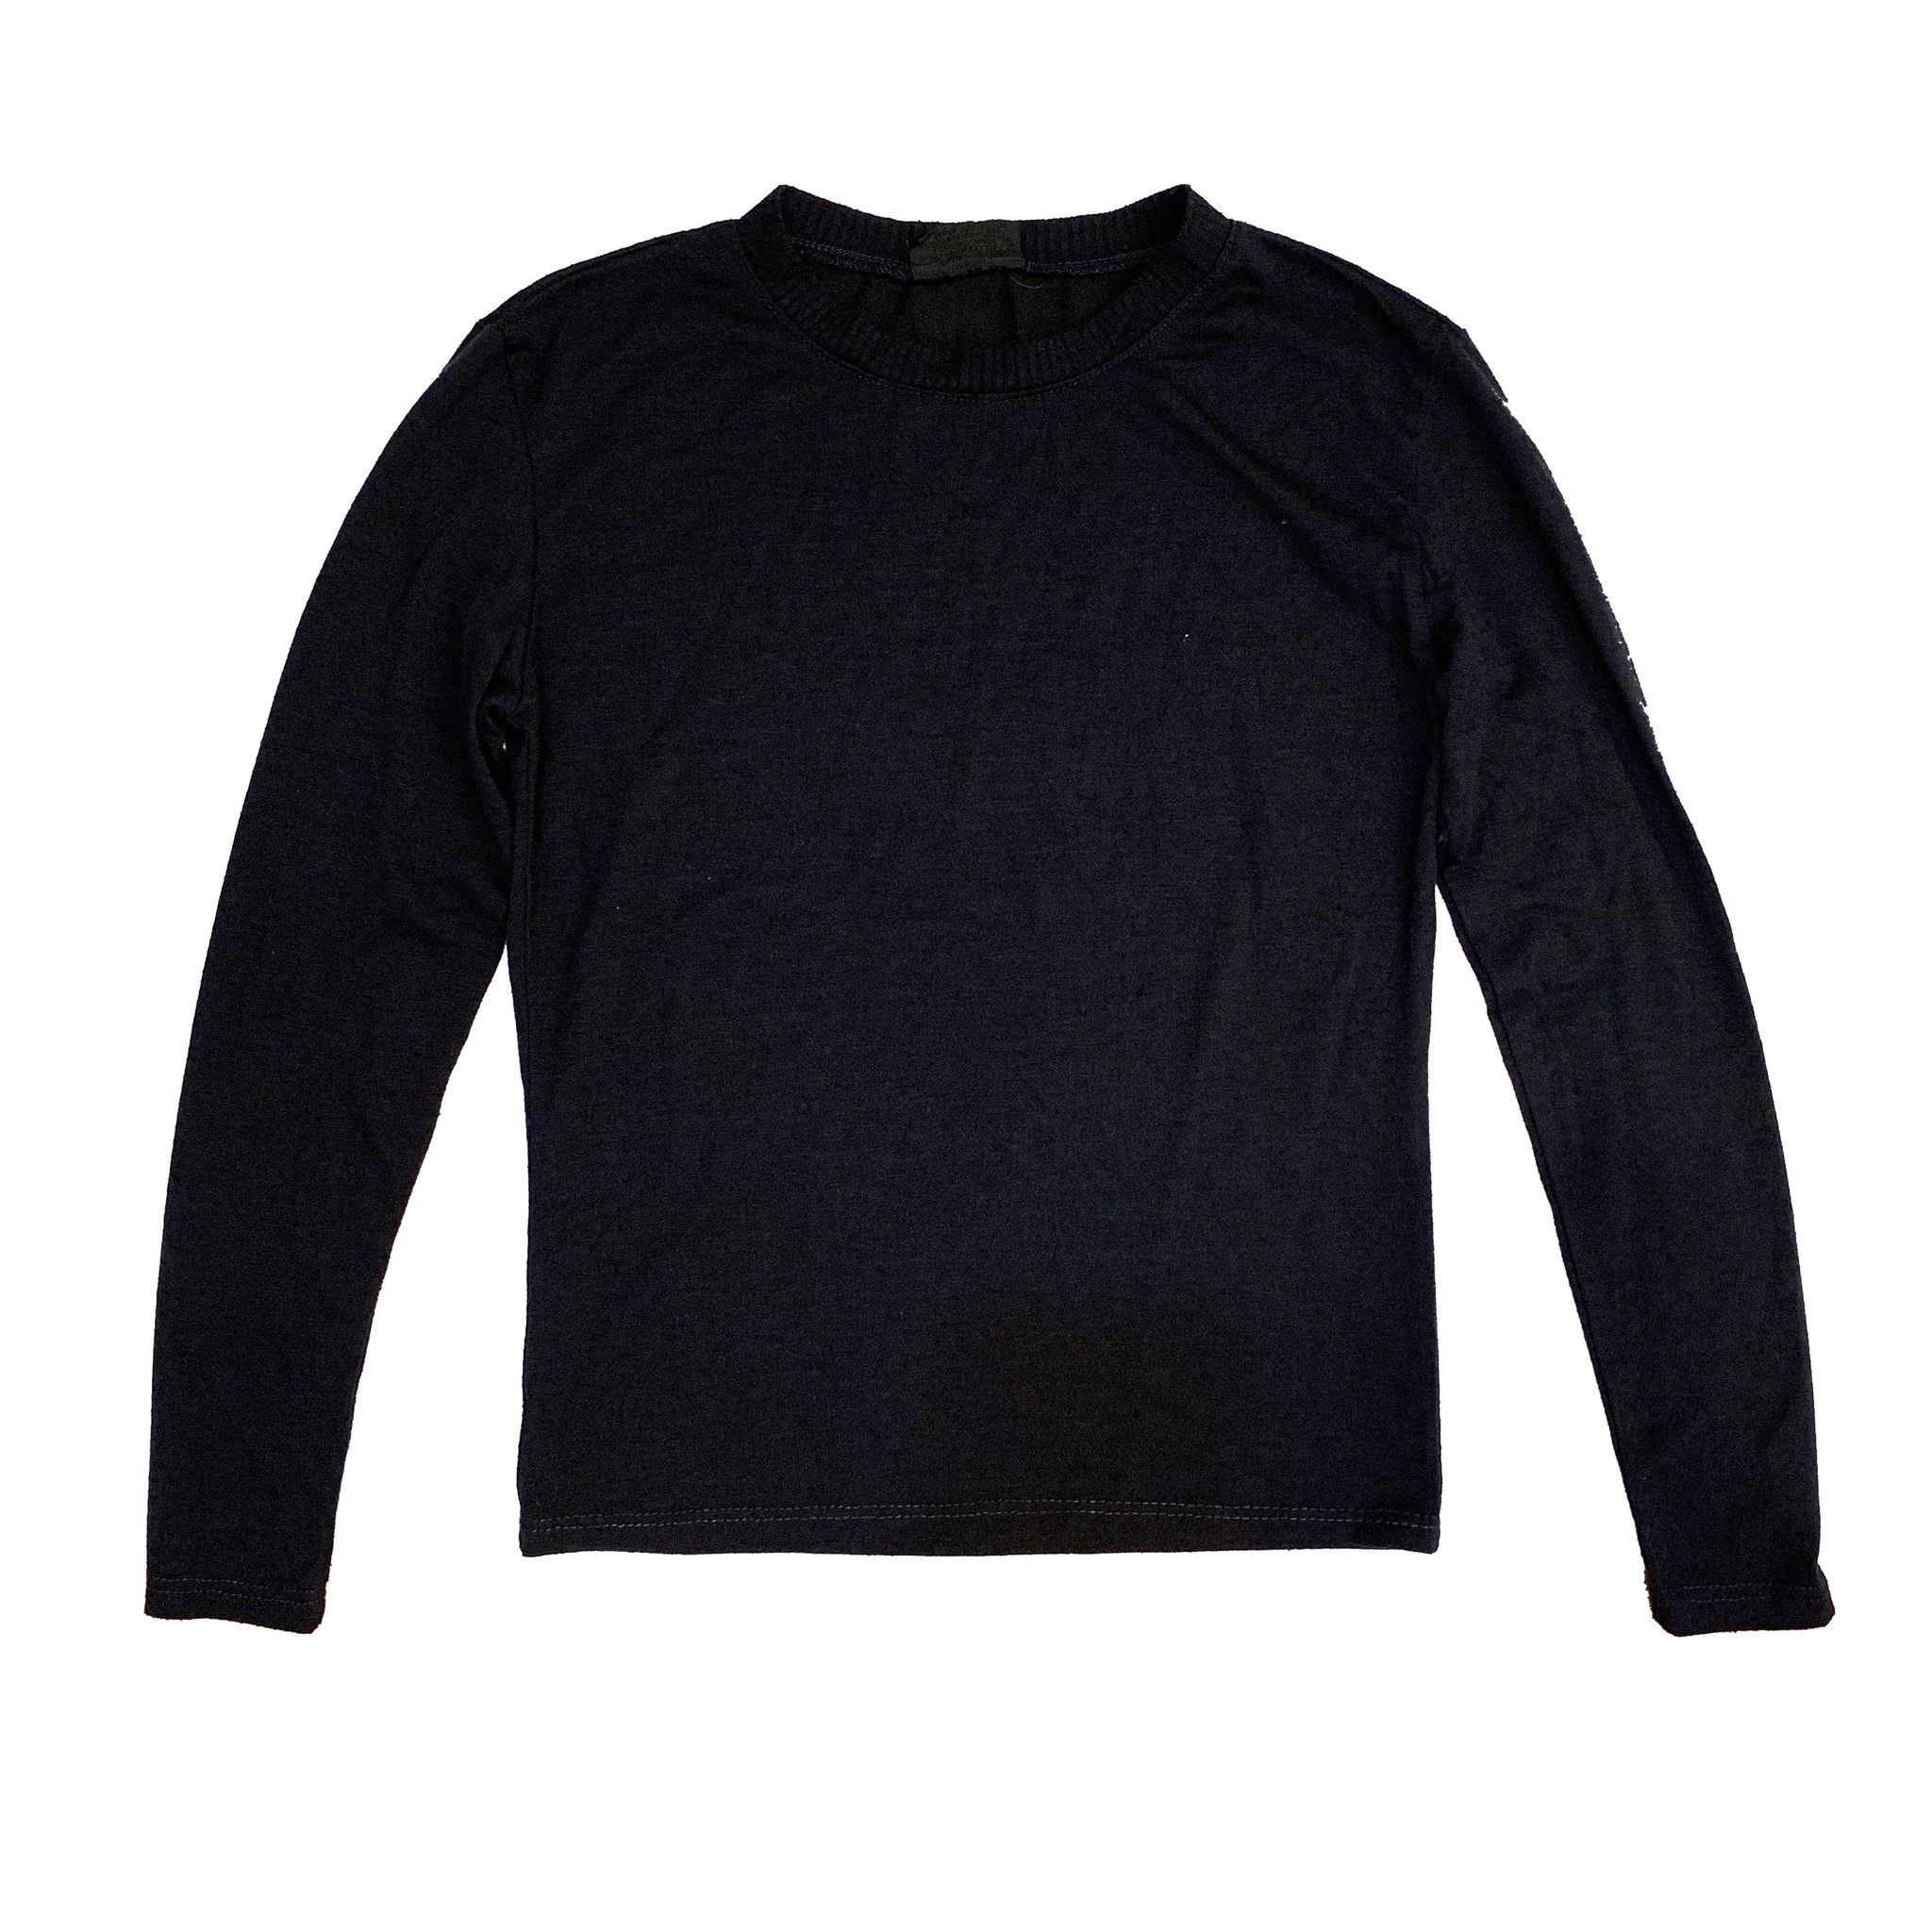 Firehouse Black Ribbed Neck Top